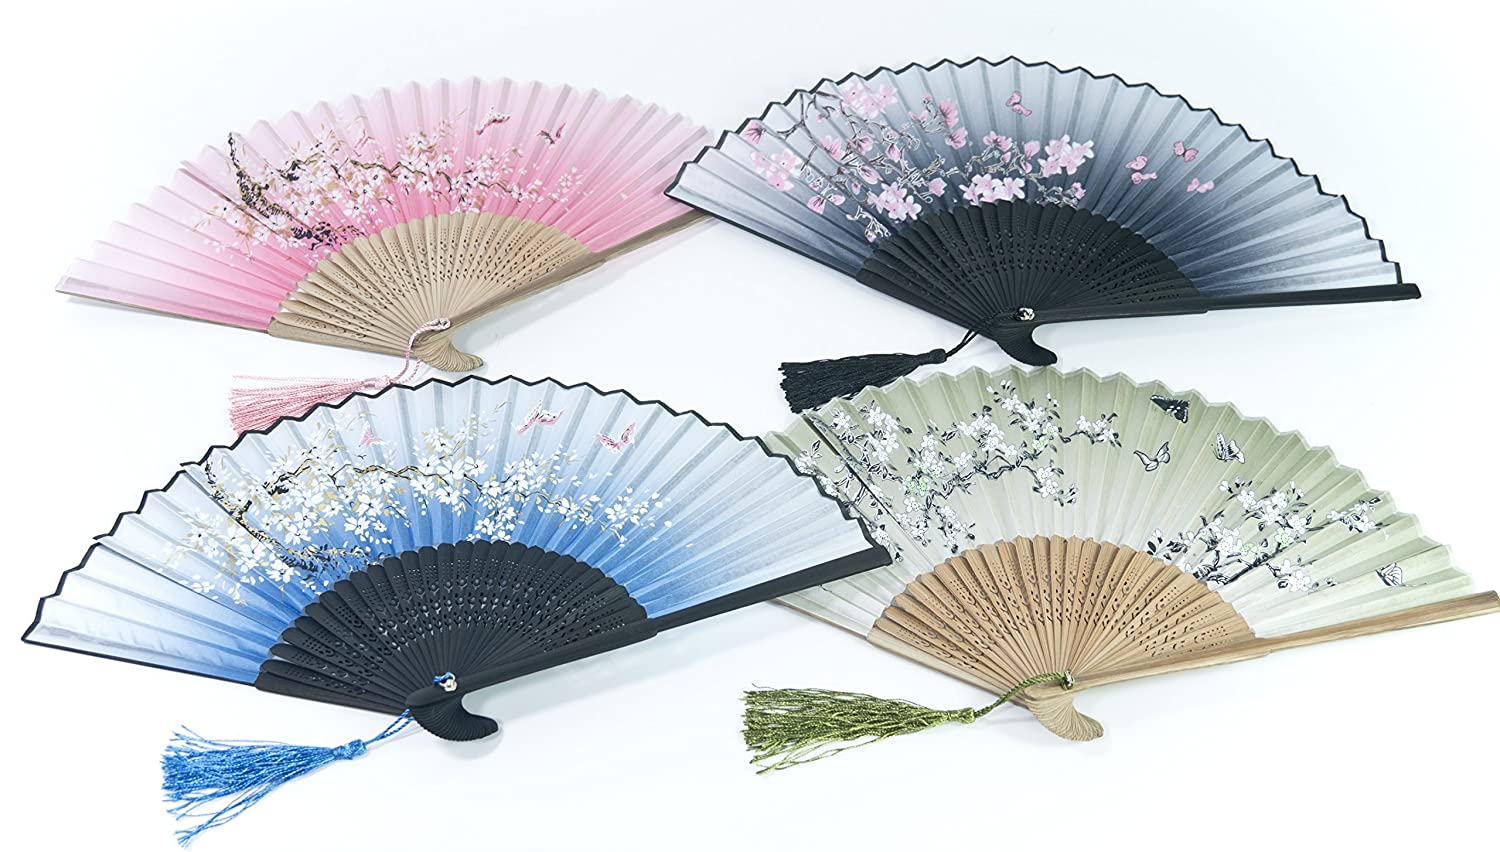 All In One Chinese//Japanese Vintage Retro Style Hand Held Folding Fan Bamboo Frame Butterfly Flower Pattern with Sleeve /& Grift Box for Craft Home Party Event Decoration Grift Purple-Sakura